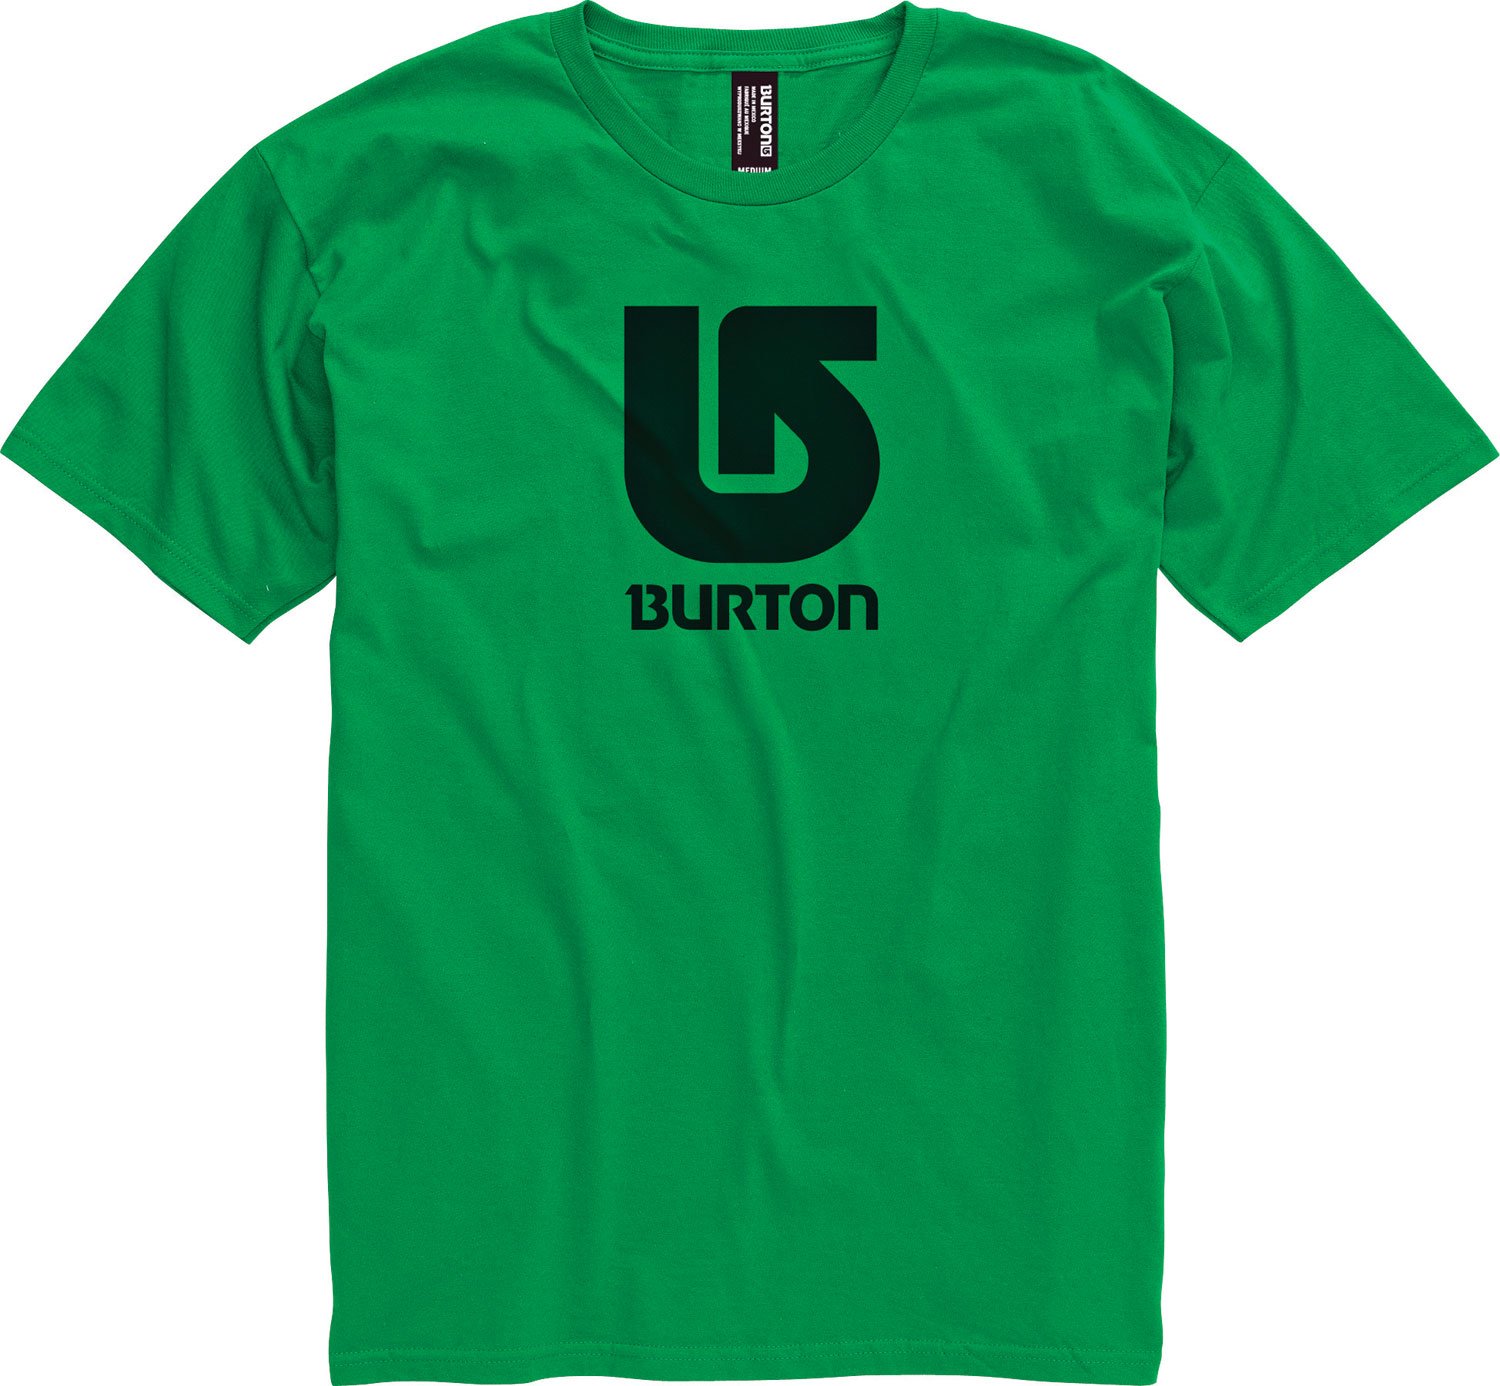 Snowboard Key Features of the Burton Logo Vertical T-Shirt: 90% Cotton, 10% Polyester [Heather Gray] 100% Cotton [All Other Colorways] Screen Print on Front and Back Regular Fit - $21.00